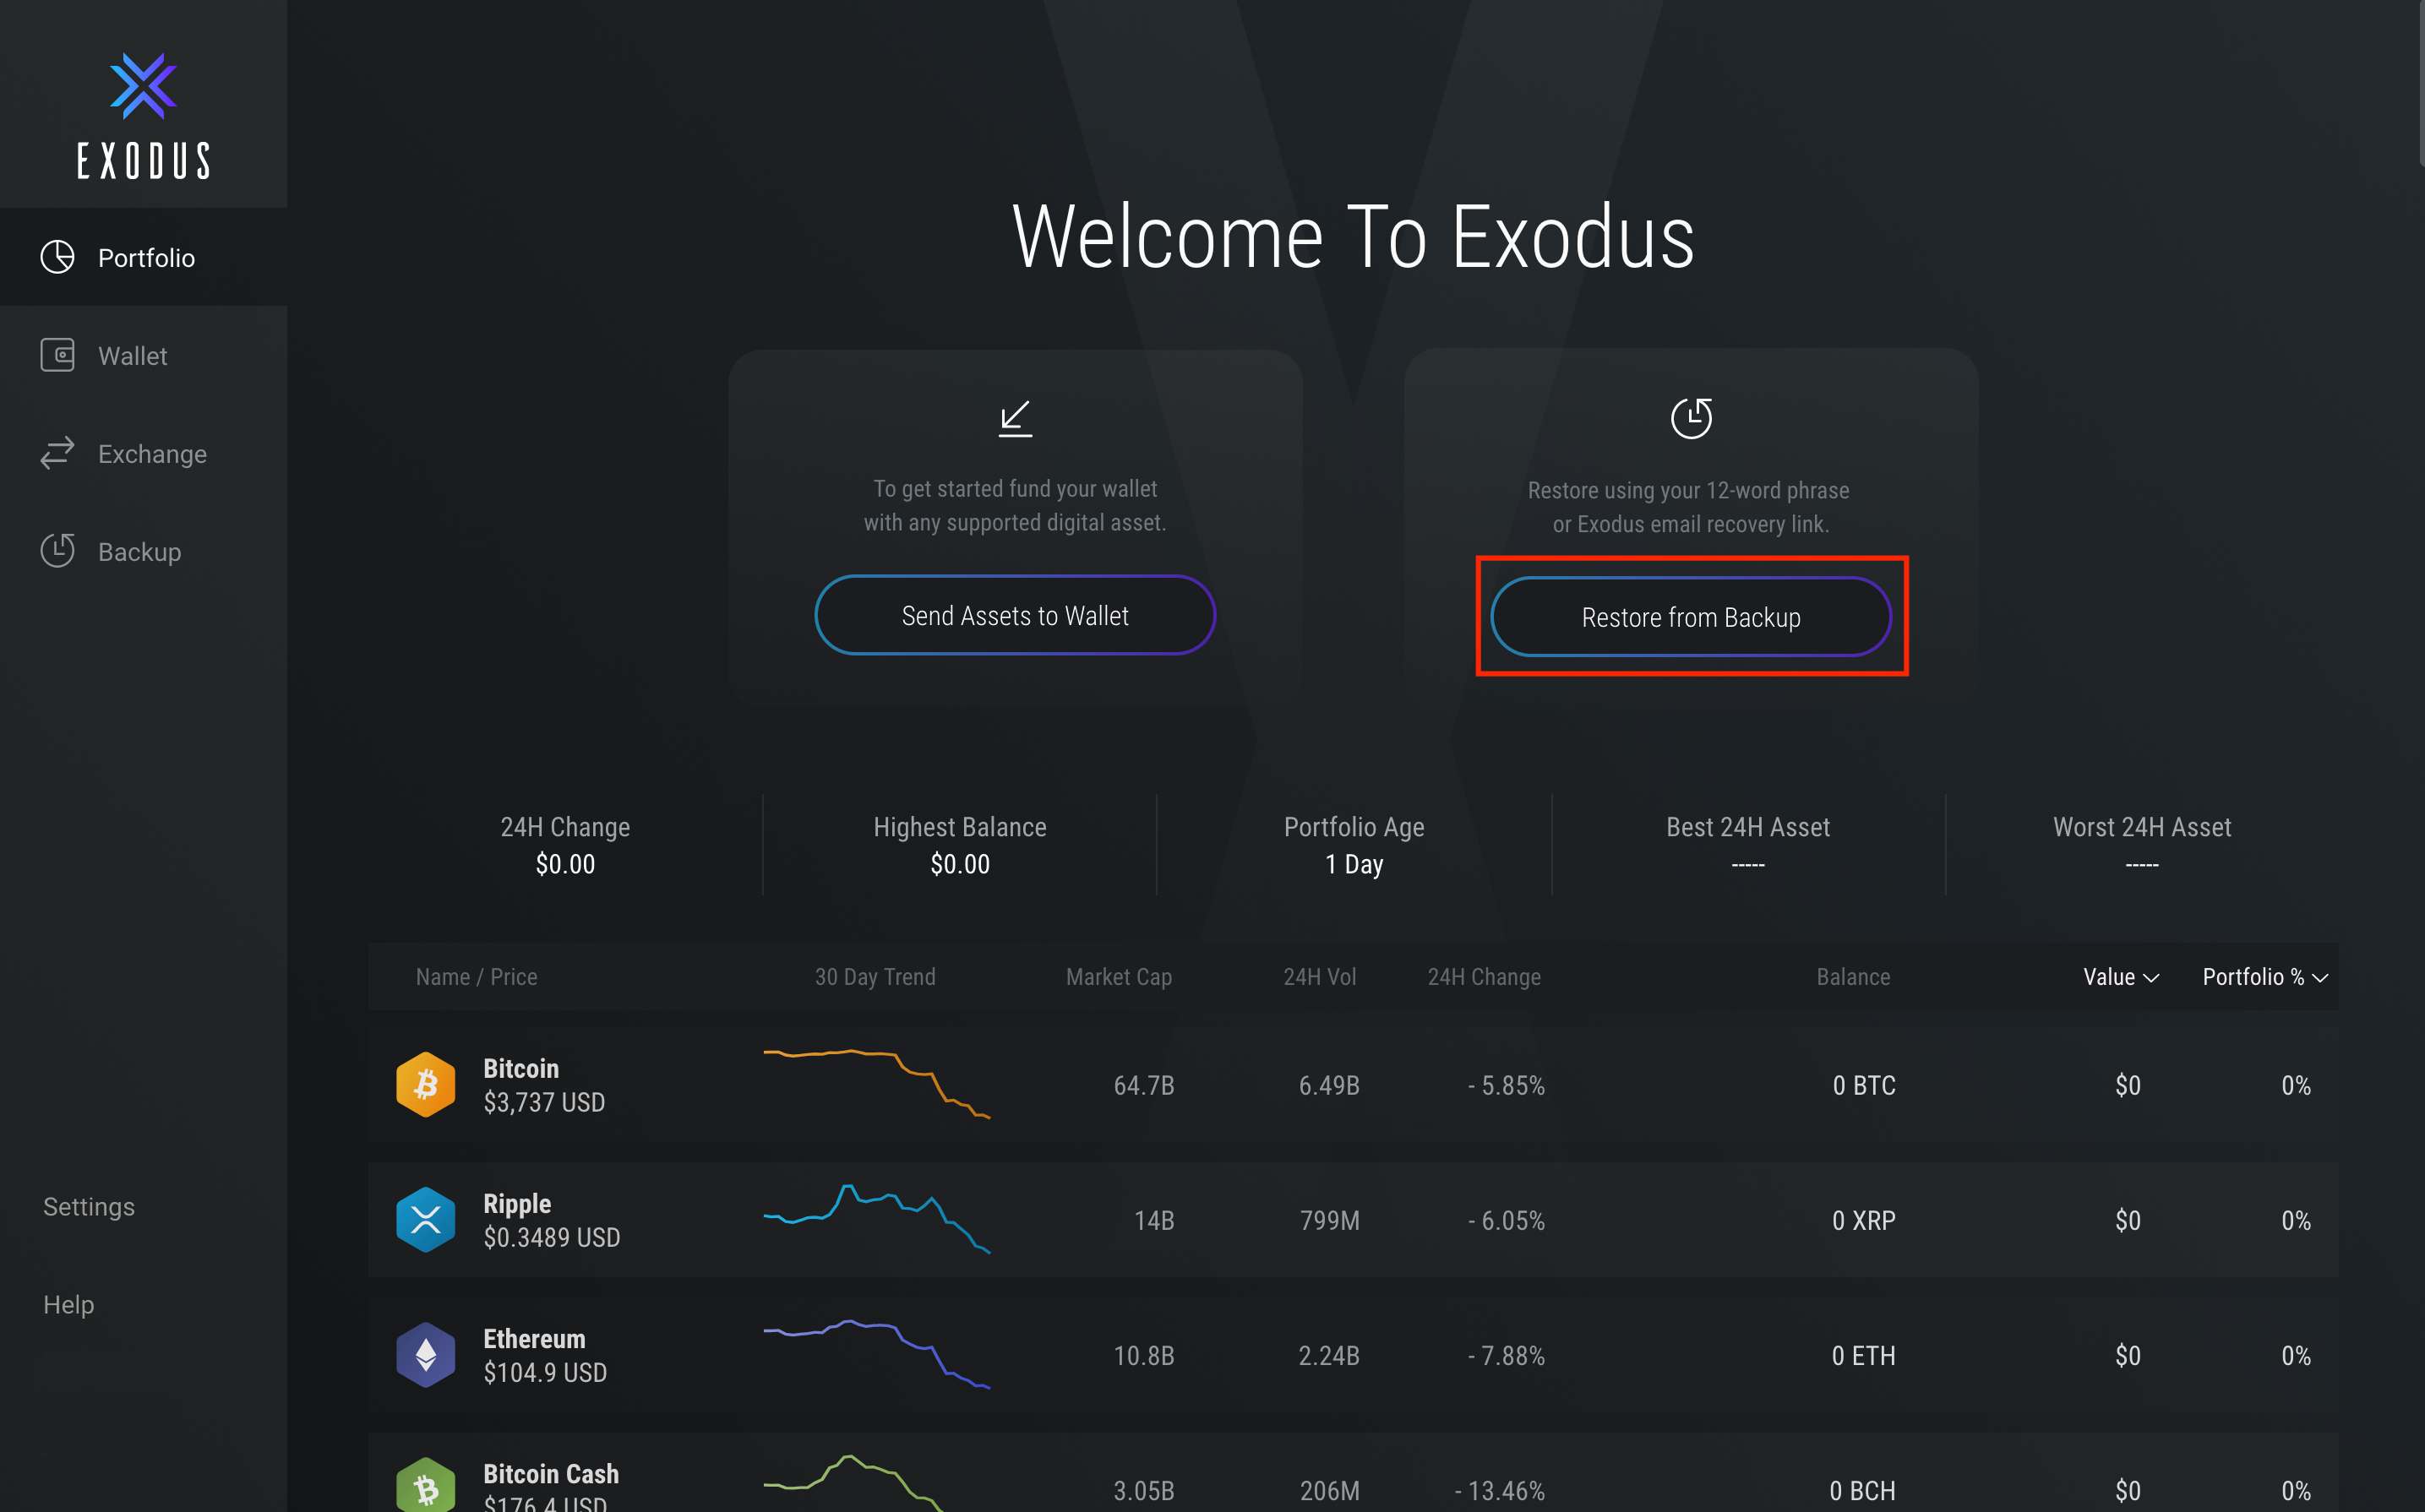 How do I restore from my 12 word recovery phrase? - Exodus Support